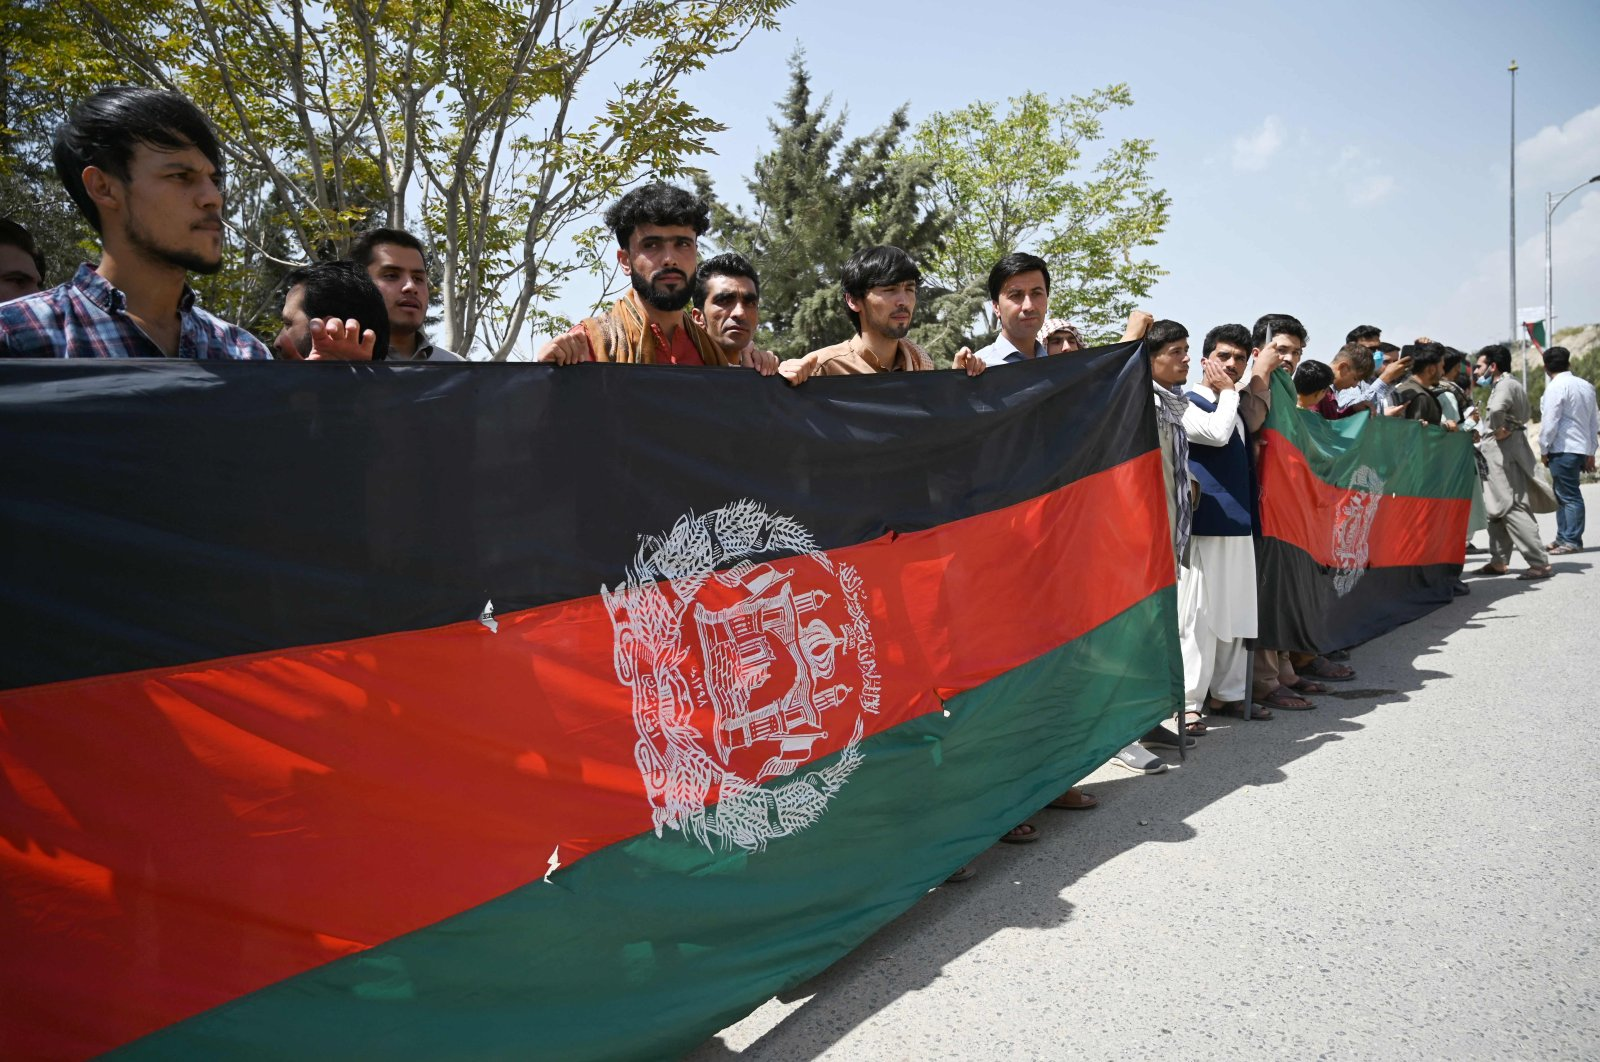 Afghans celebrate the 102nd Independence Day of Afghanistan with the national flag in Kabul, Afghanistan, on Aug. 19, 2021. (AFP Photo)